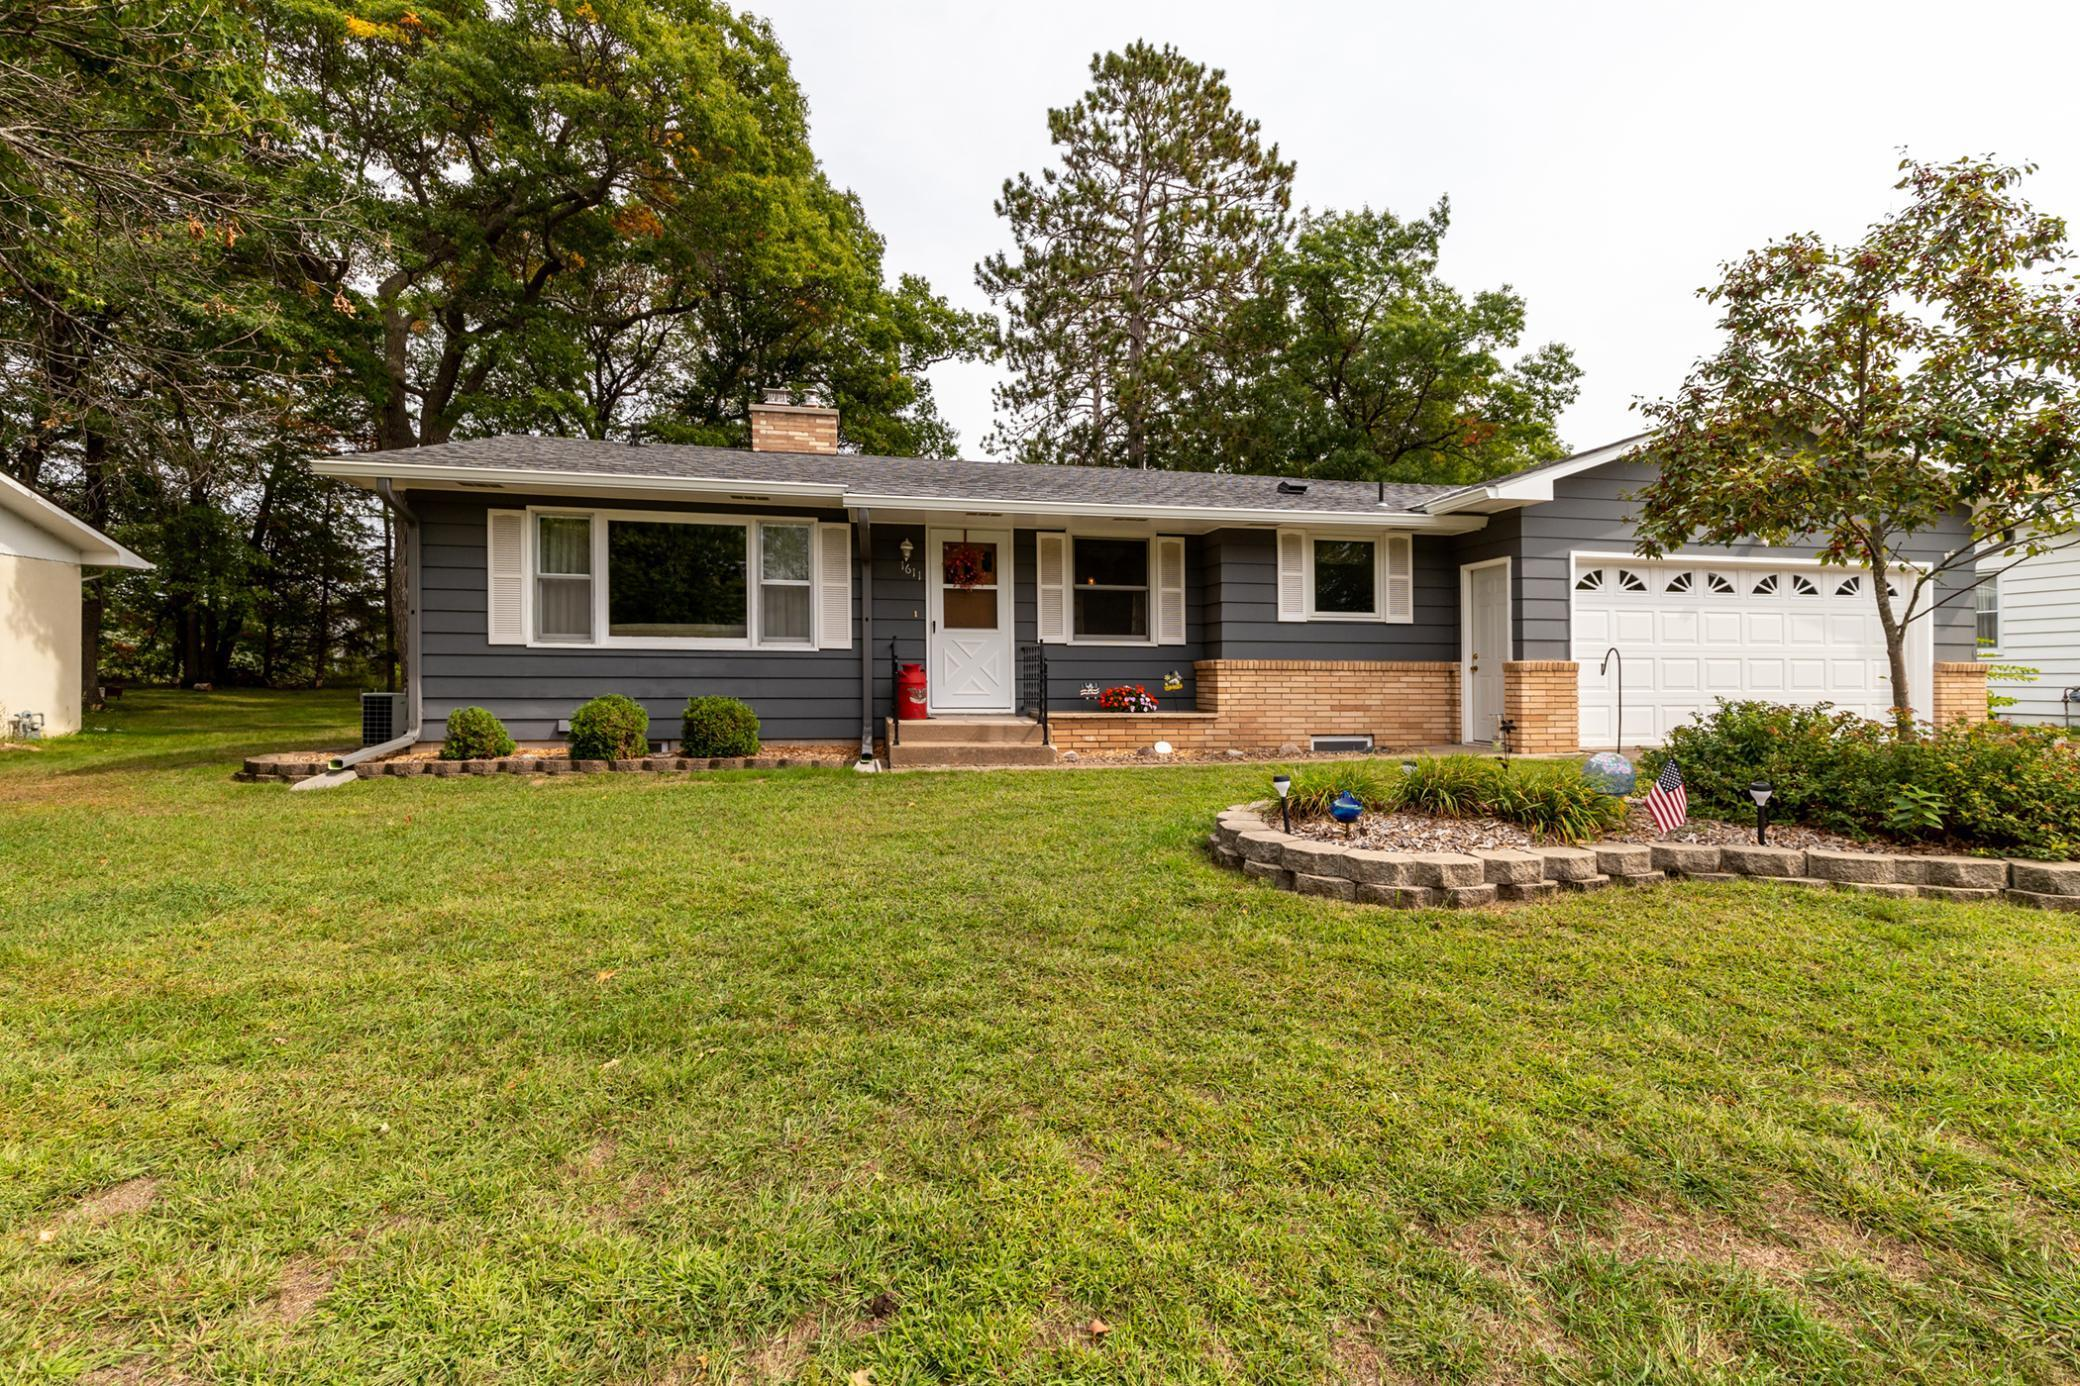 Extremely well maintained 4 bed/2 bath home in a great Brainerd neighborhood. Home features 3 bedrooms on the main level, spacious main level family room w/ gas fireplace, 3 season porch, main level living room, lower level family room, attached garage, spacious kitchen, and updated roof, updated windows and much more!